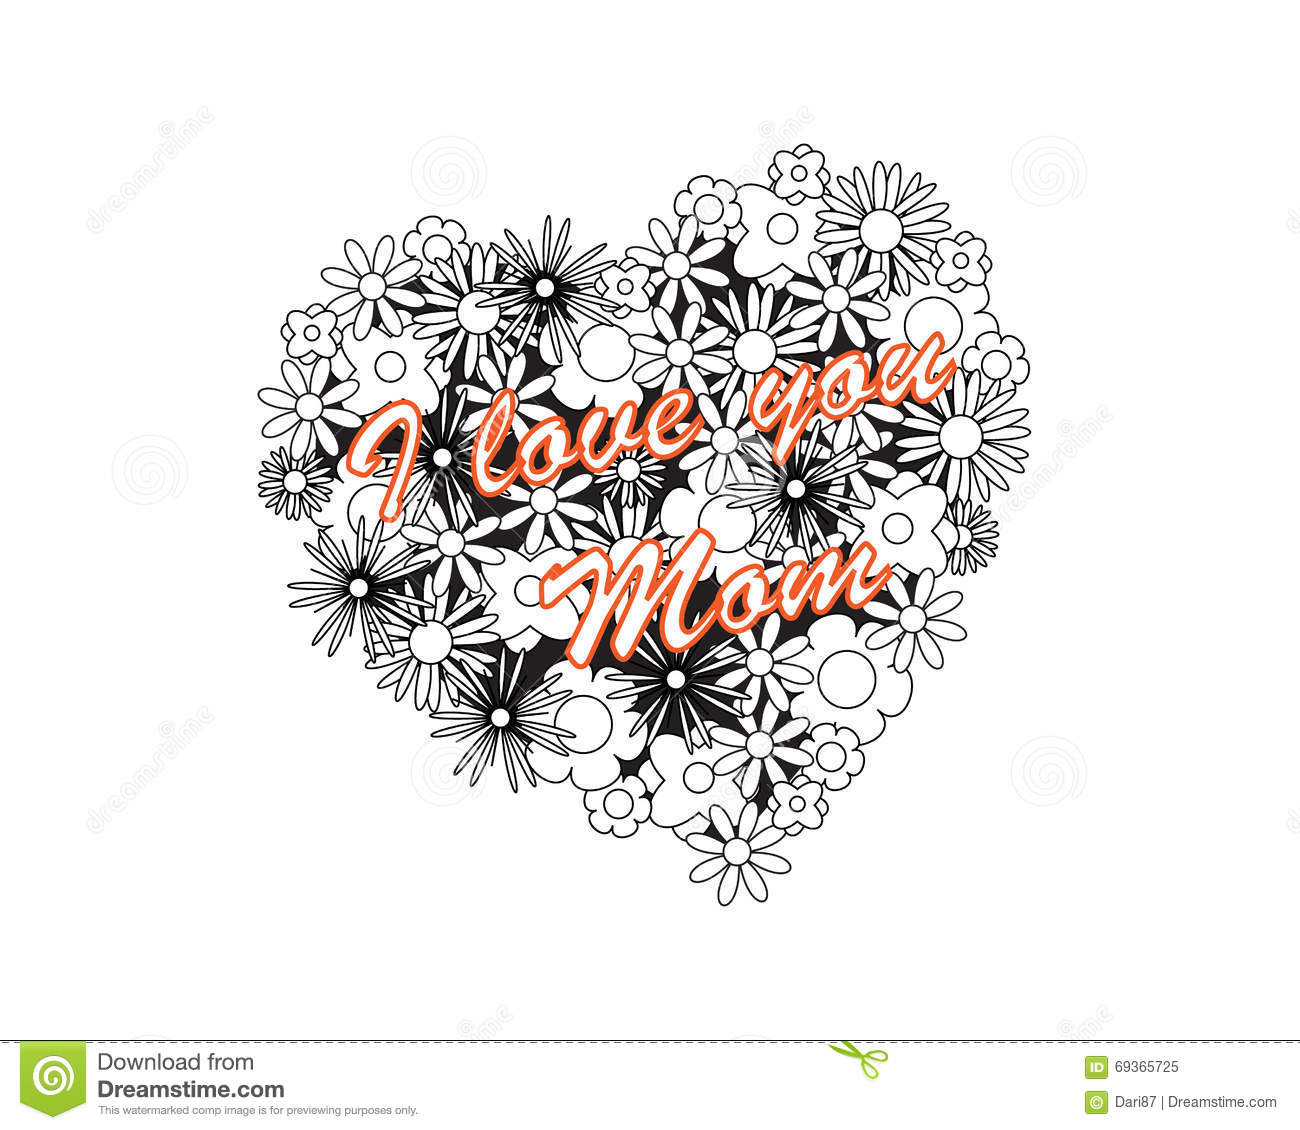 coloring image heart mothers day page adult od kids simple floral text saying i love my mom